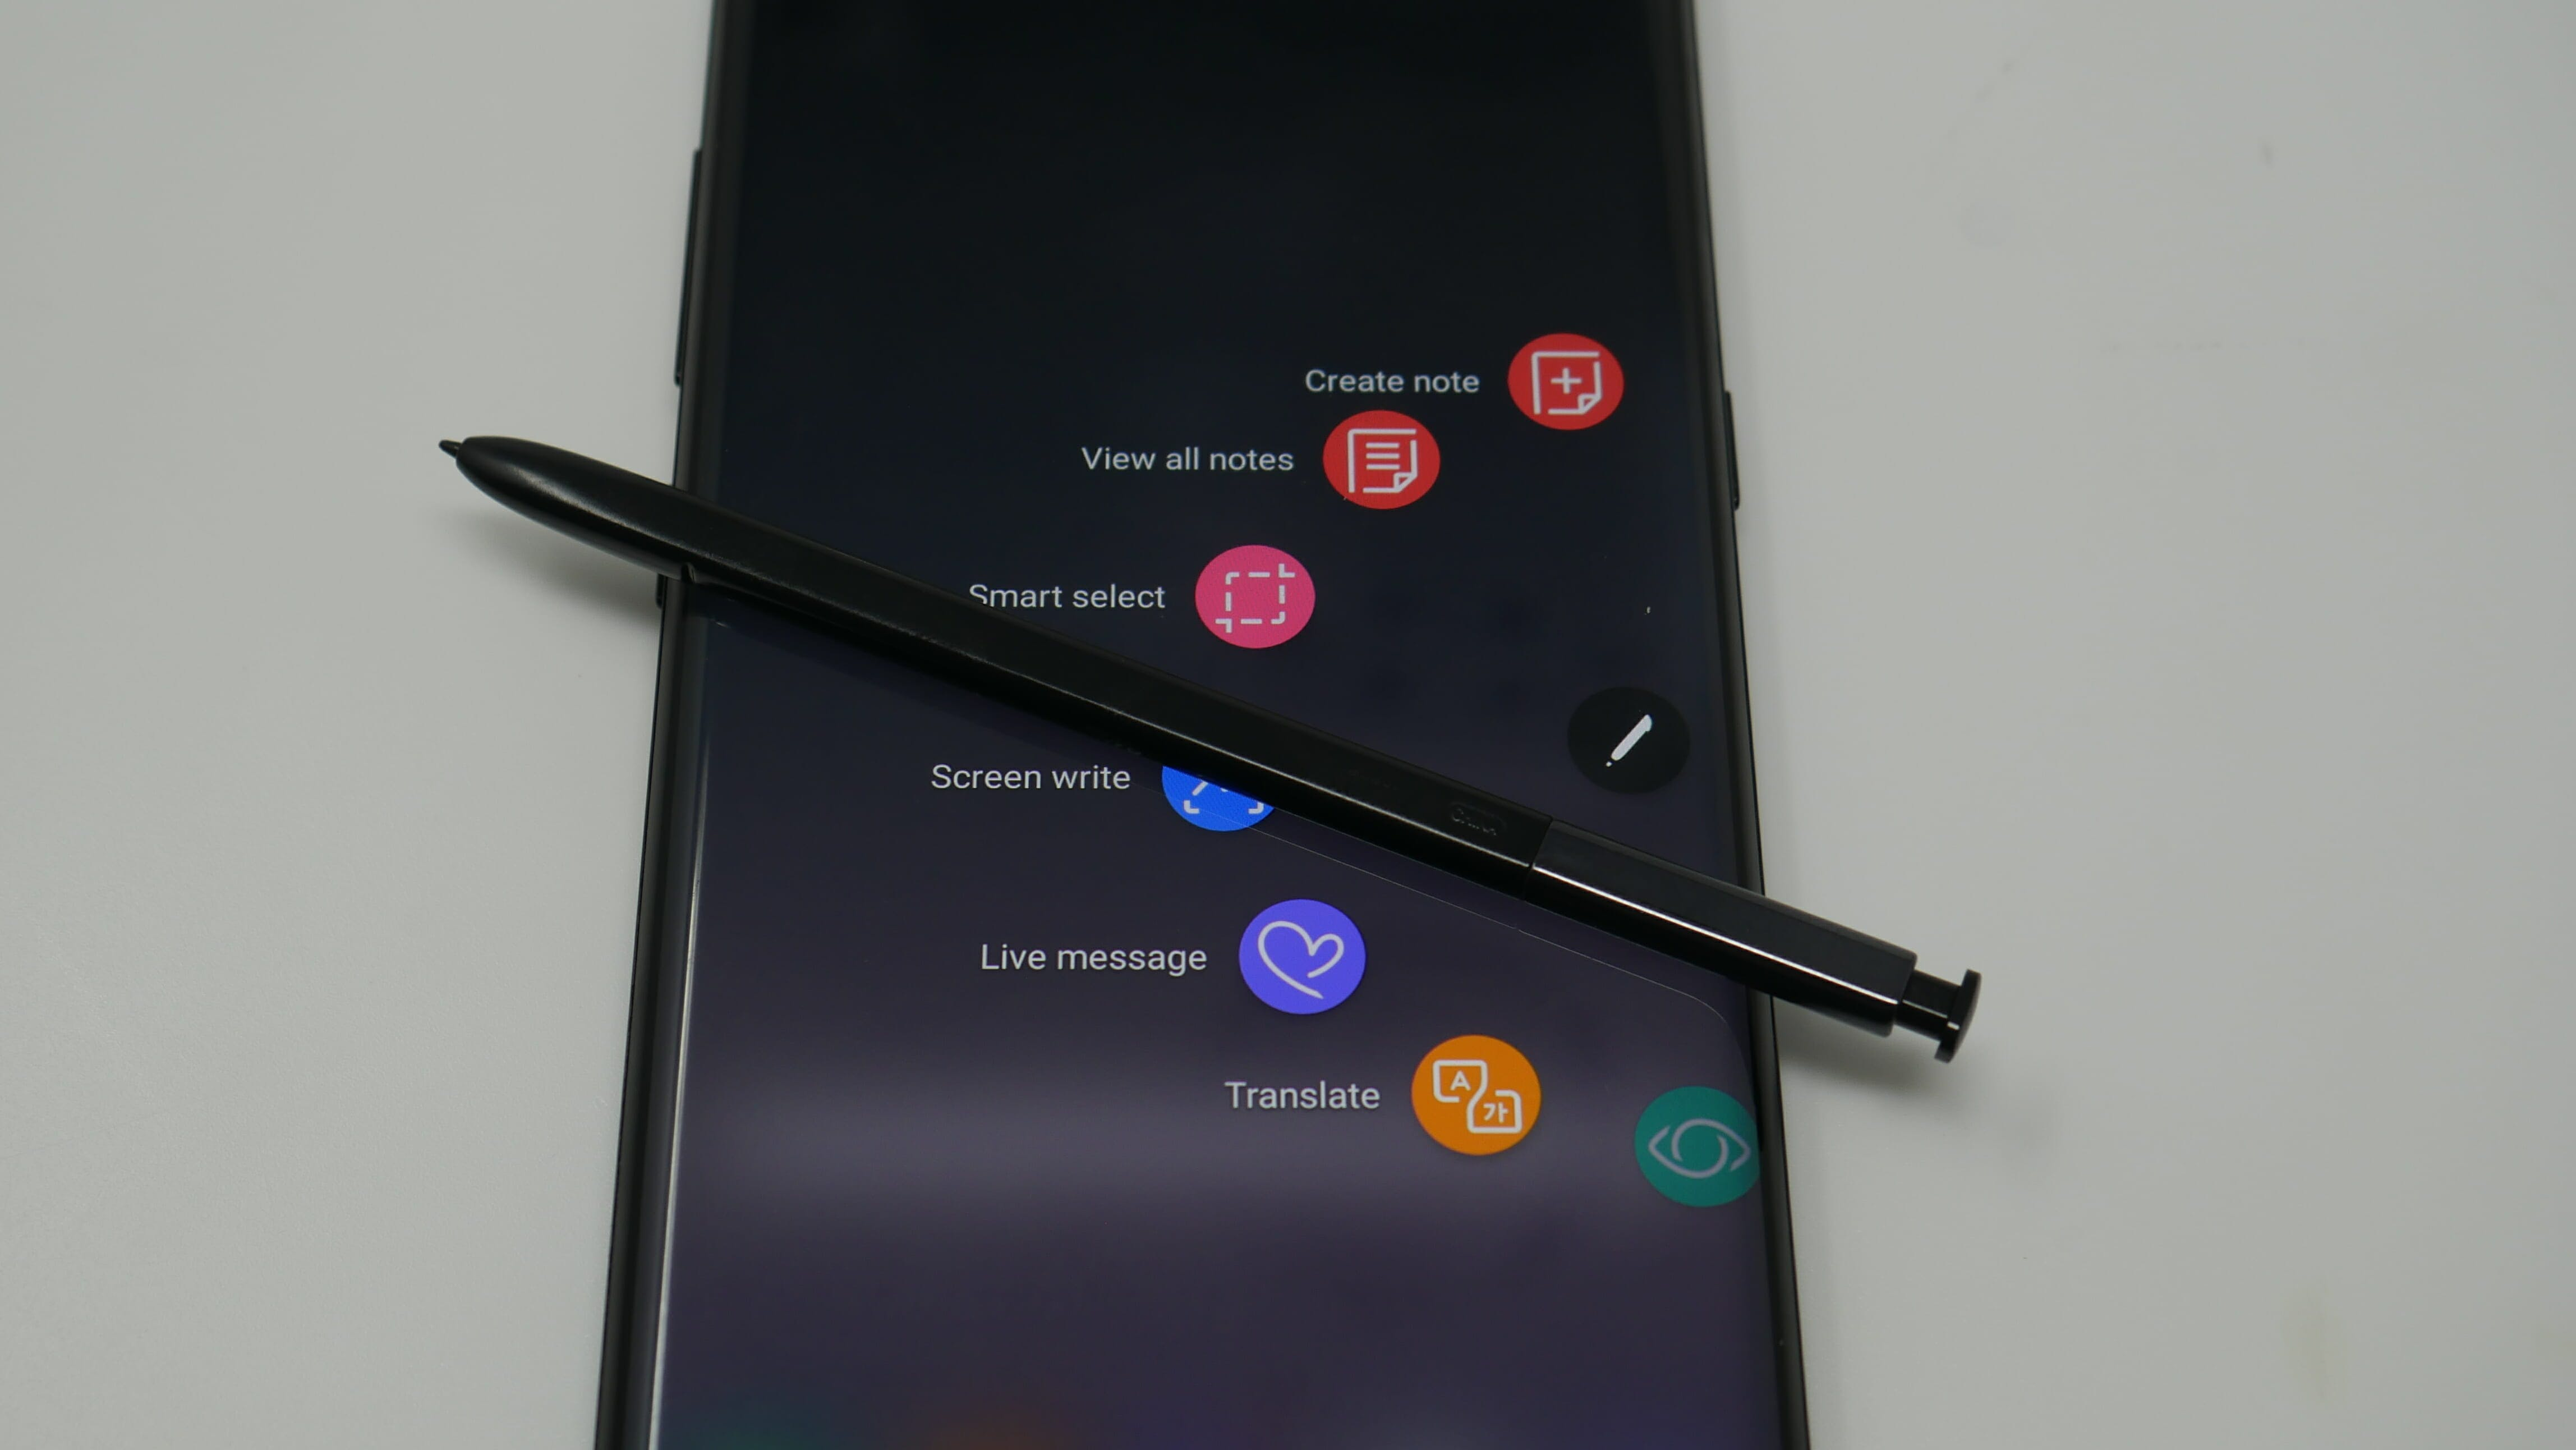 samsung galaxy note 8 s pen features